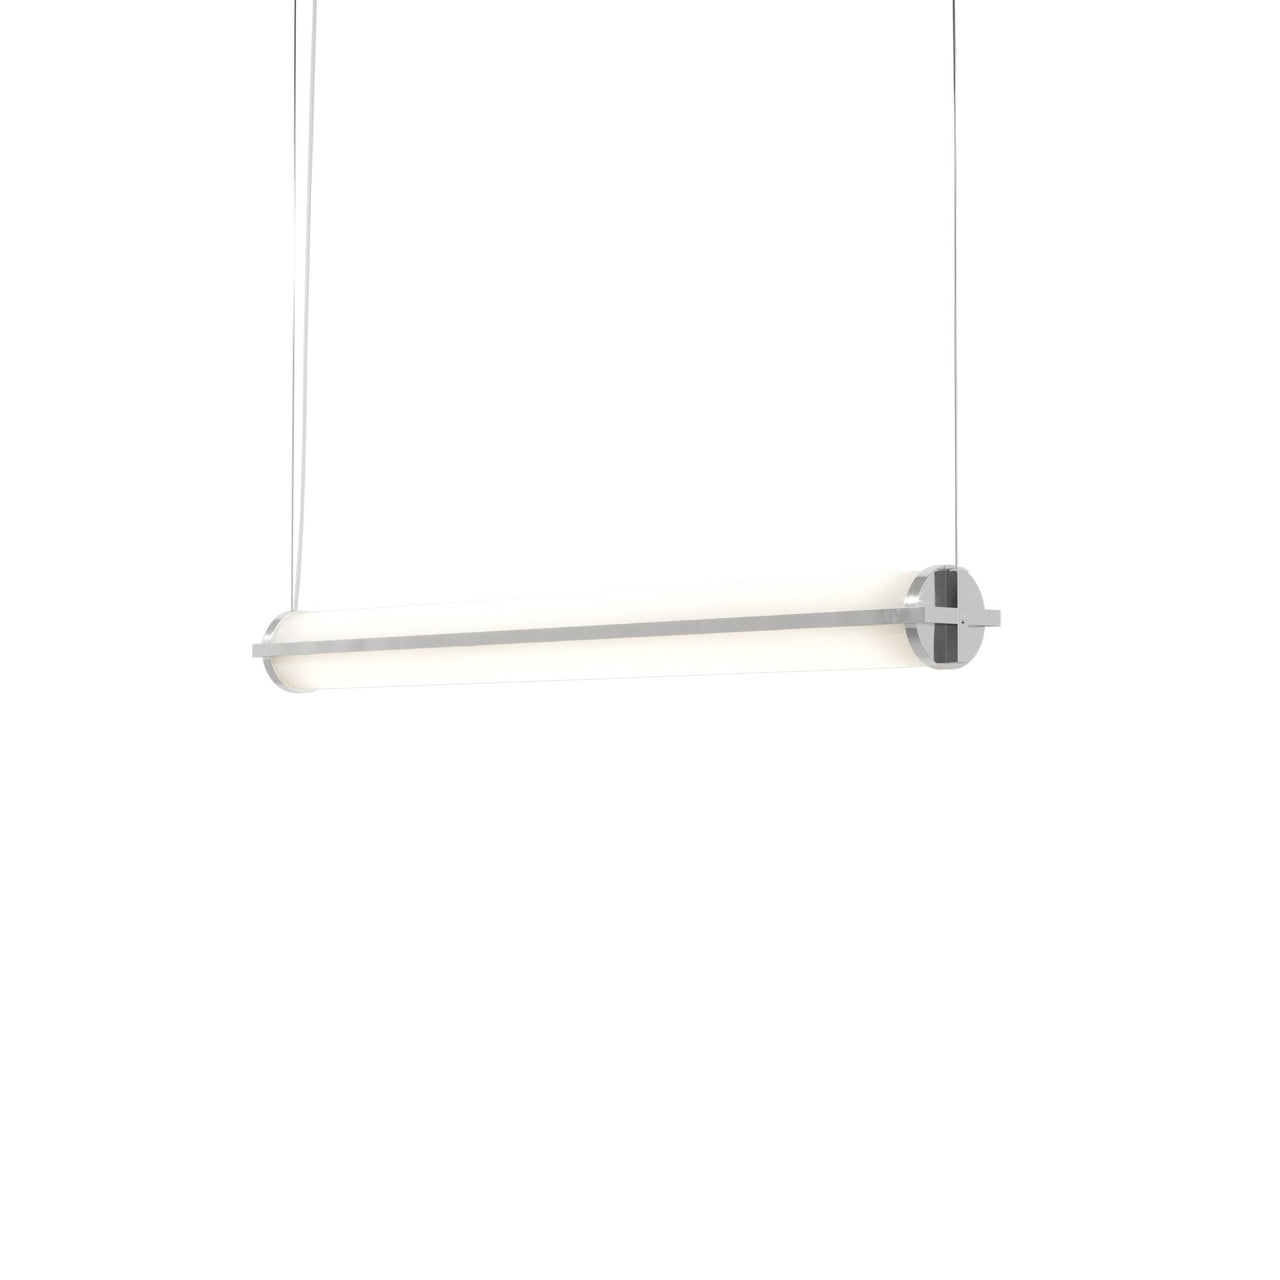 Metropolis Linear Suspension Light: Small + Polished Aluminum + No Mesh Diffuser